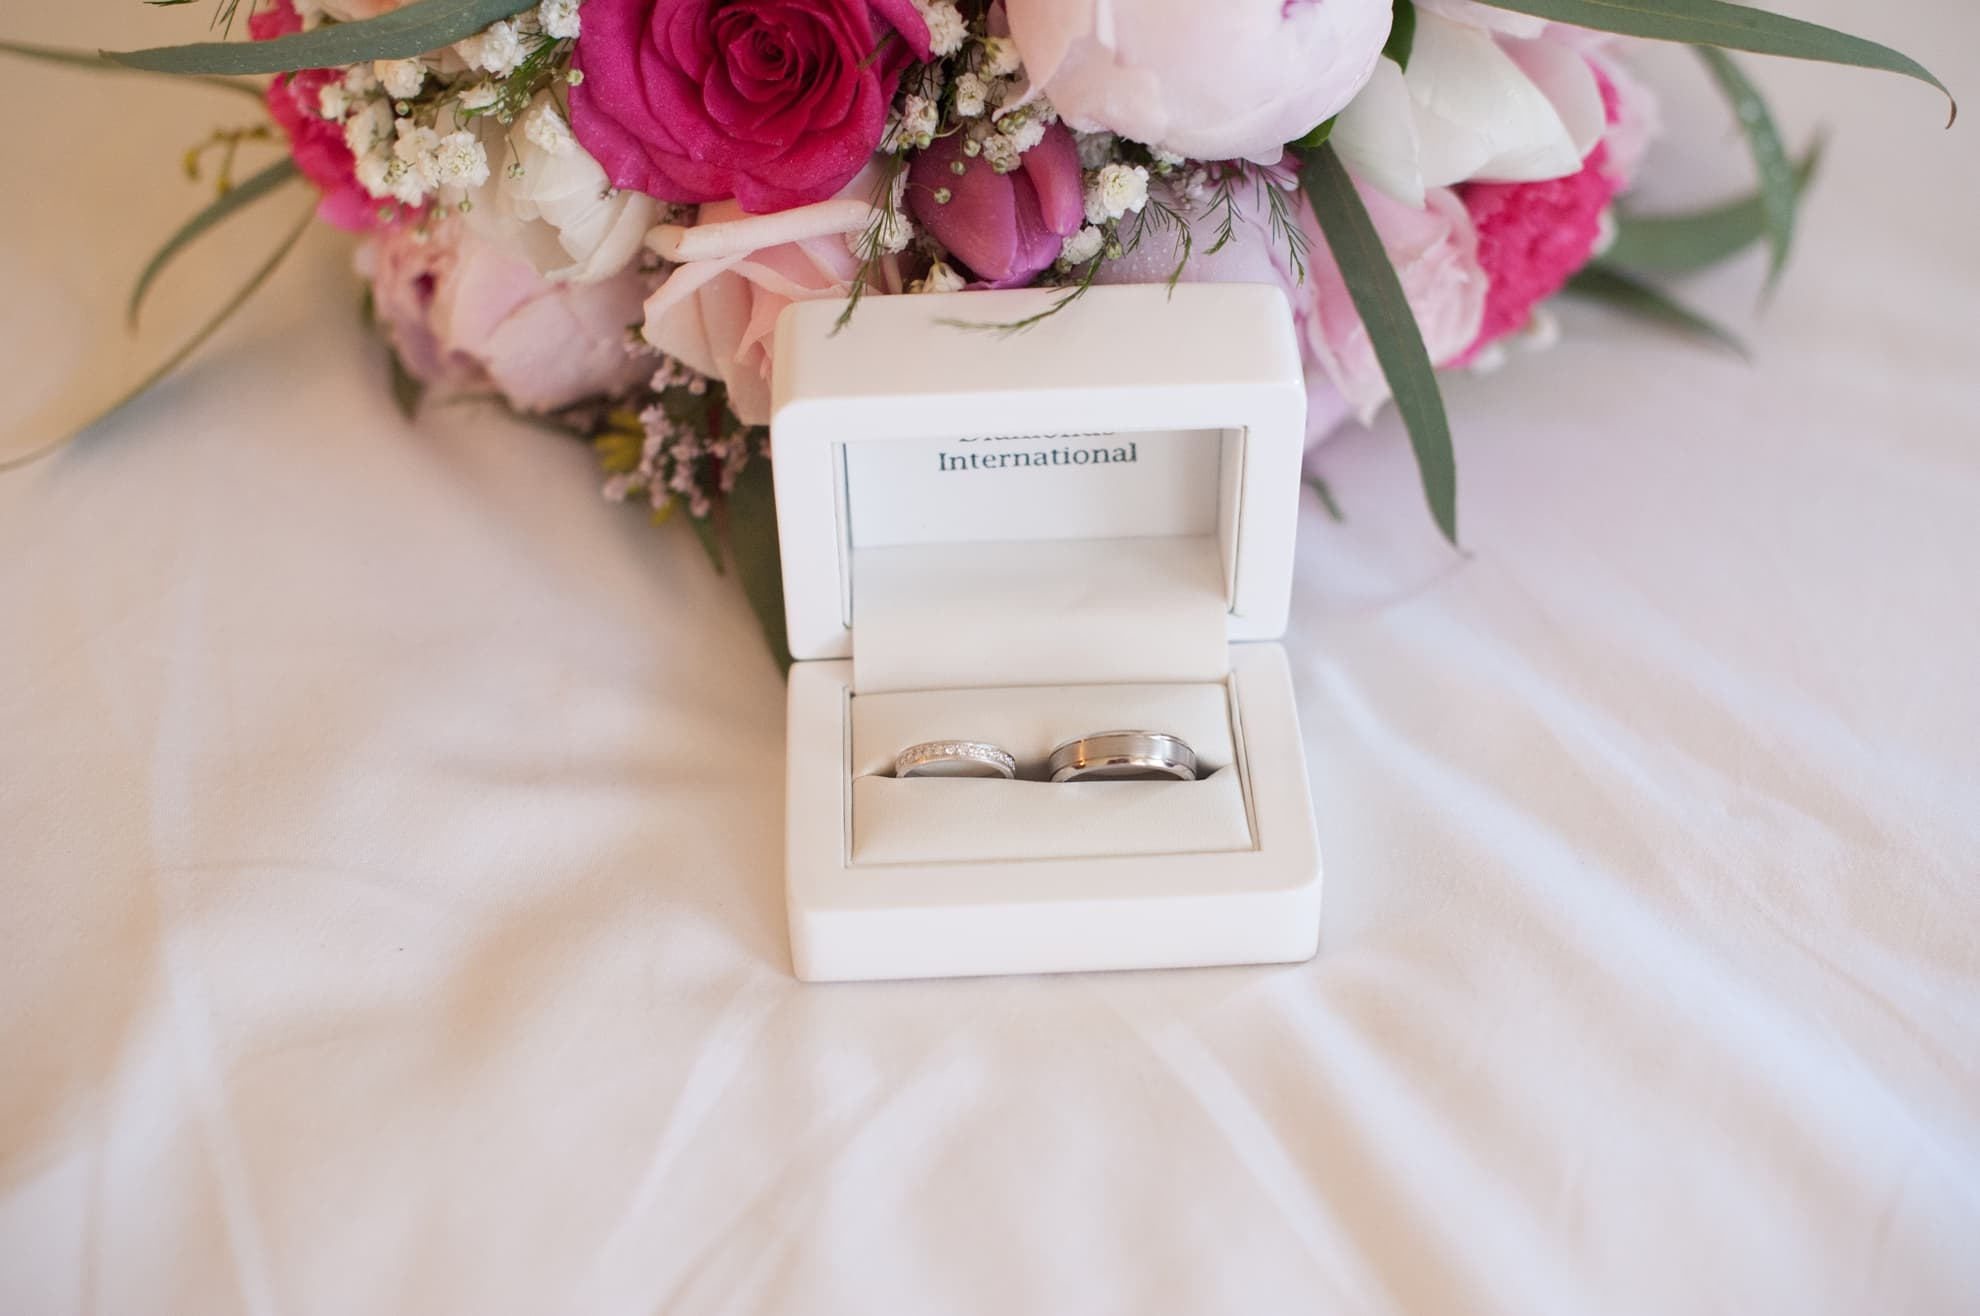 wedding-rings-sitting-on-the-bed-next-to-flowers